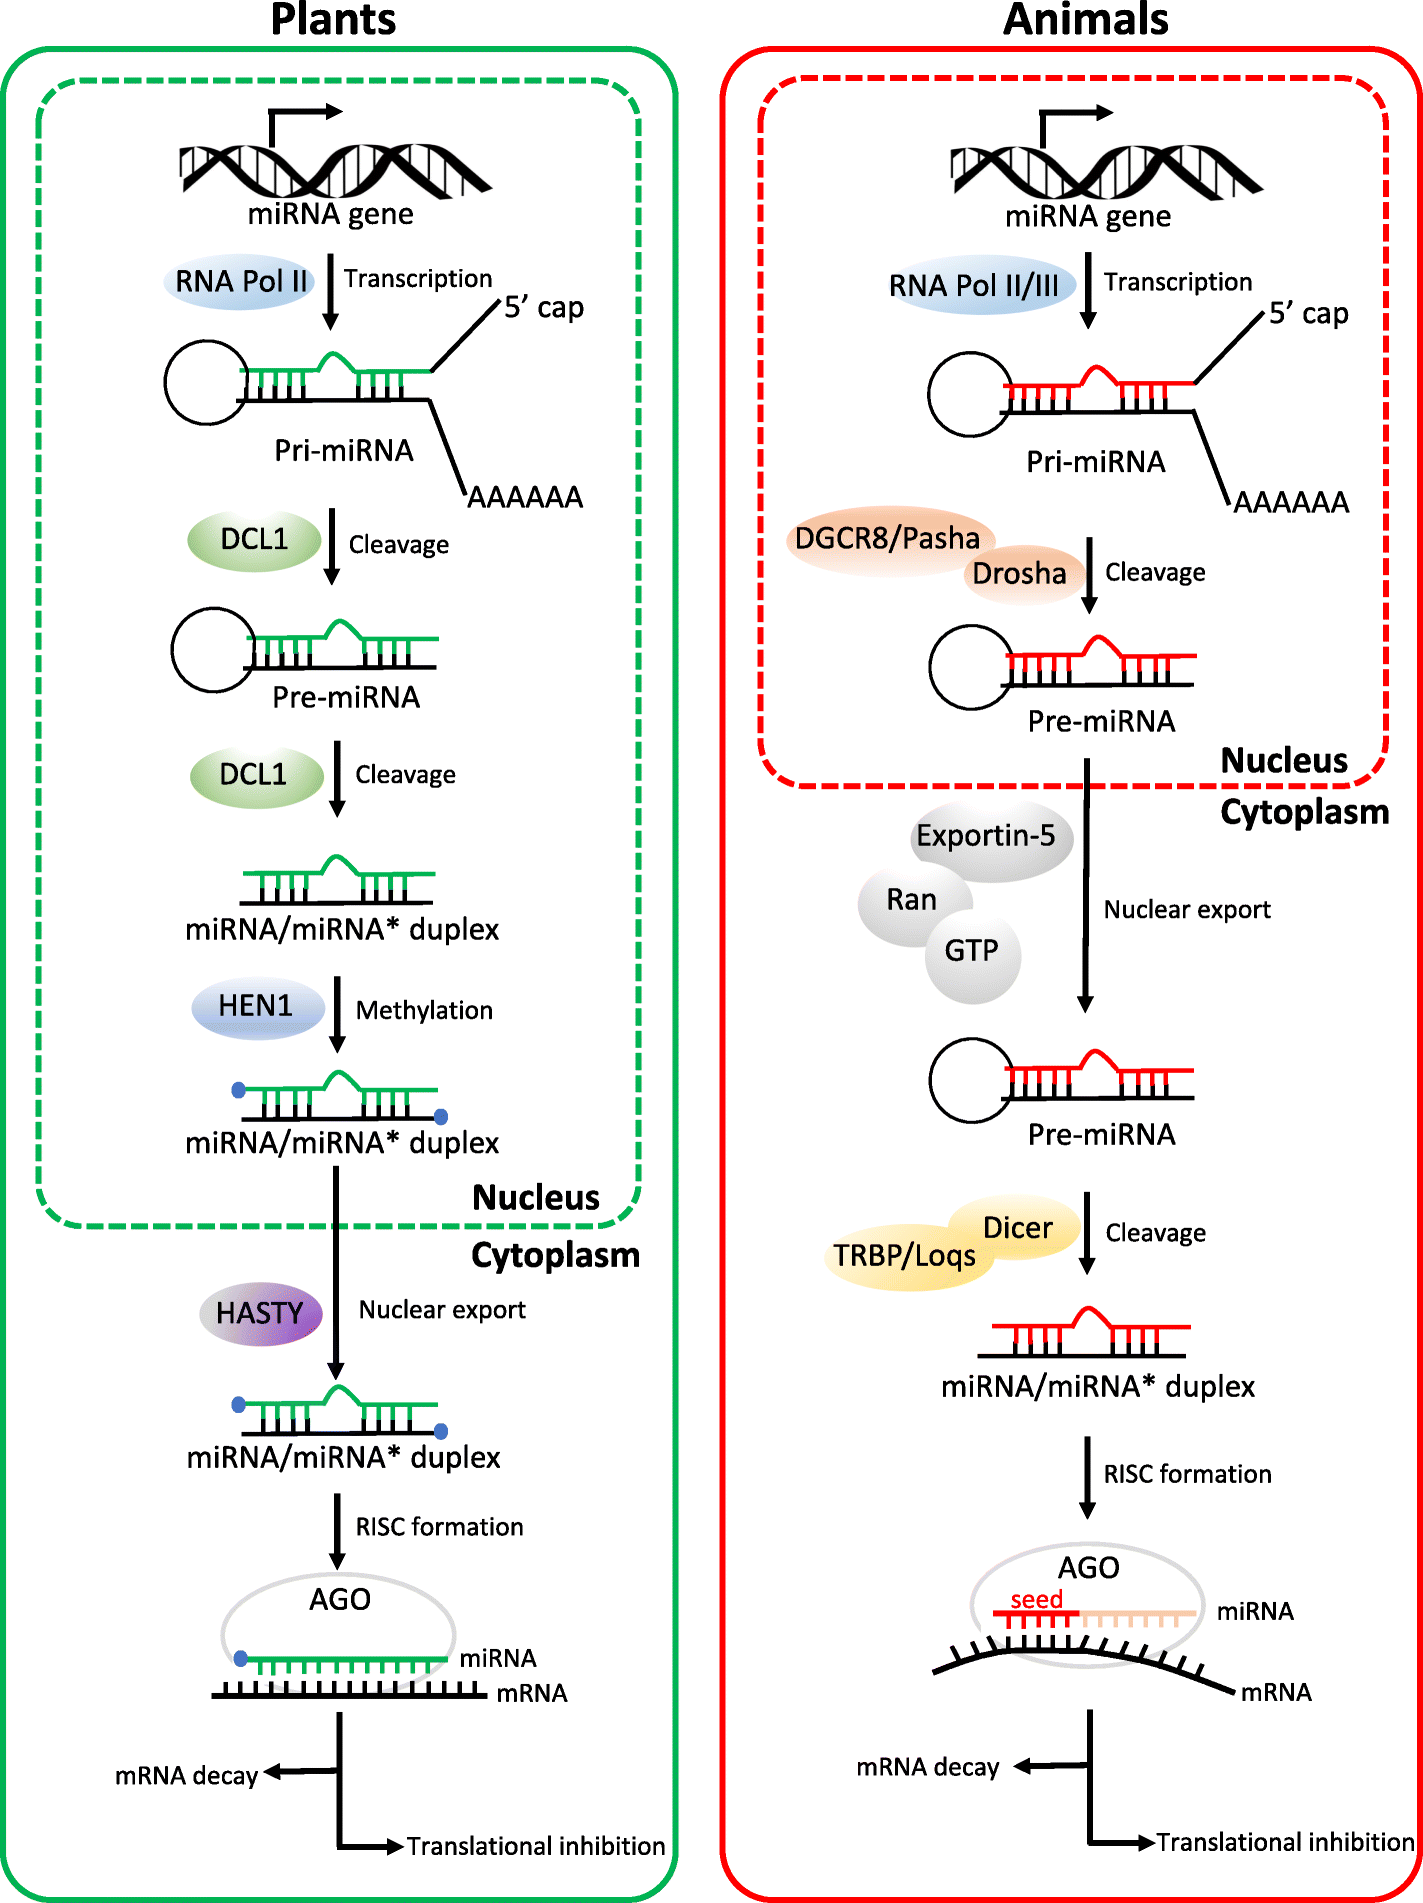 Micrornas From Plants To Animals Do They Define A New Messenger For Animal Cells Moreover Carbon Cycle On Plant And Cell Diagram Fig 1 Comparison Of Mirna Biogenesis Activity Pathways In